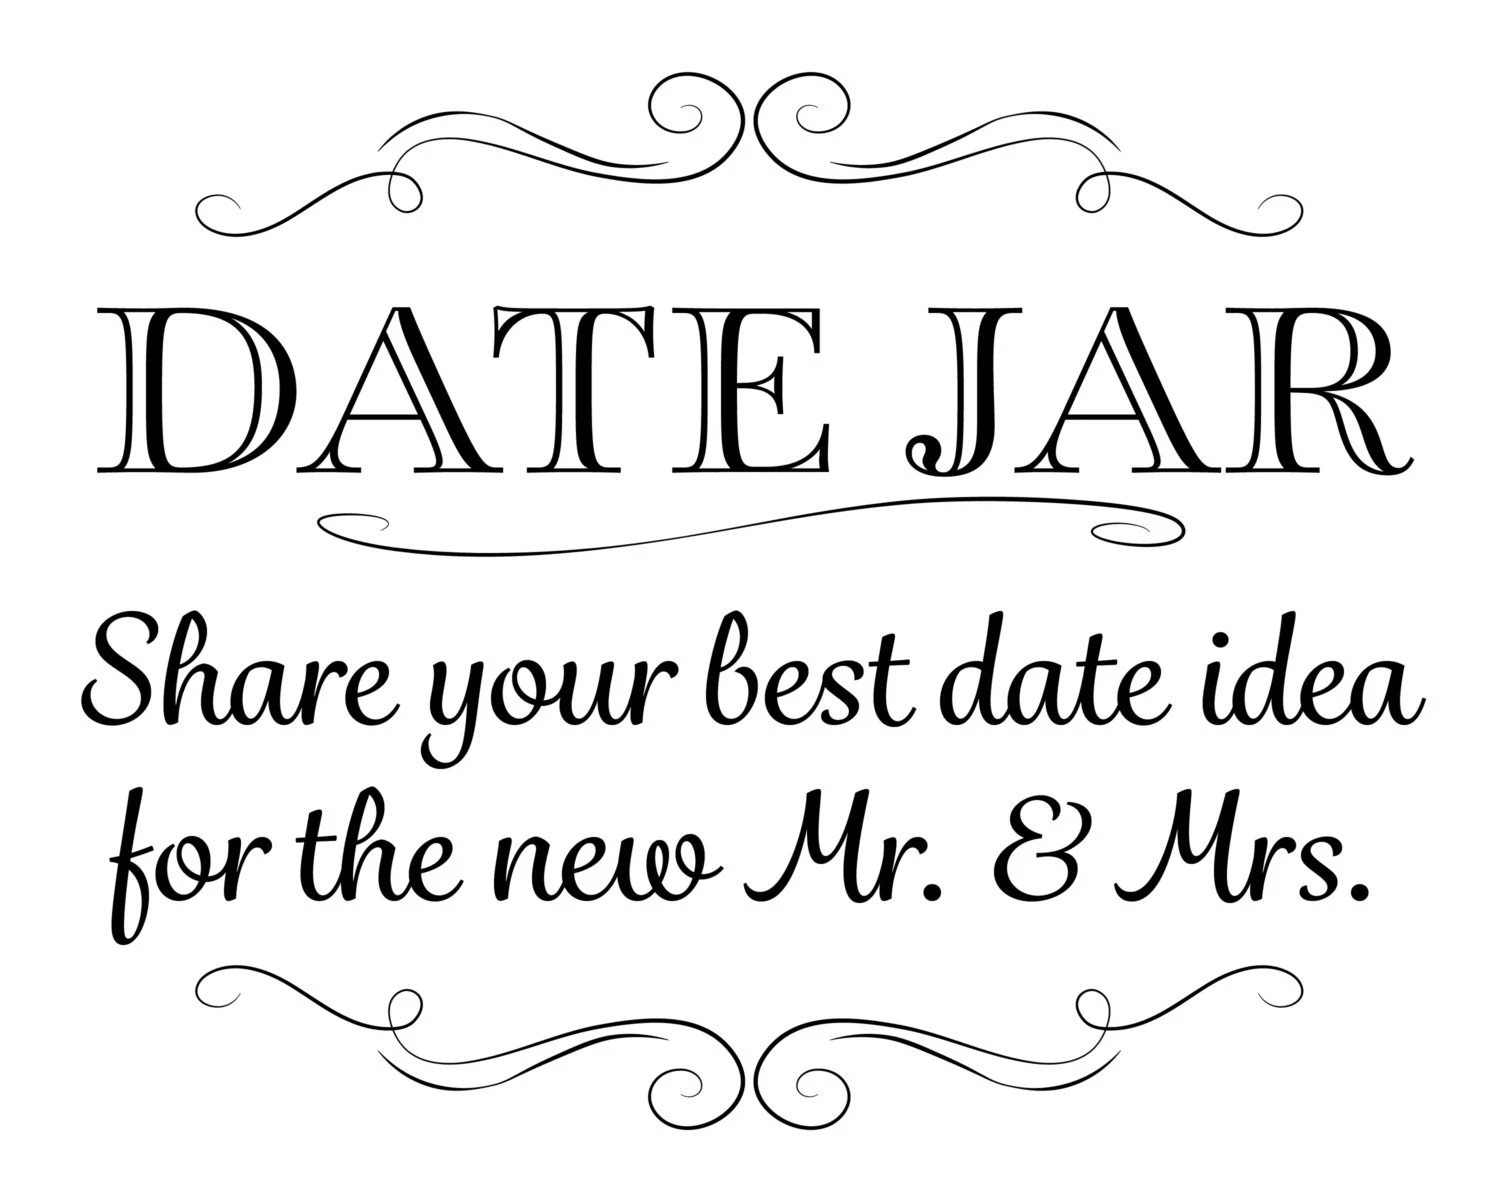 Printable Wedding Sign Date Jar Share your best date idea